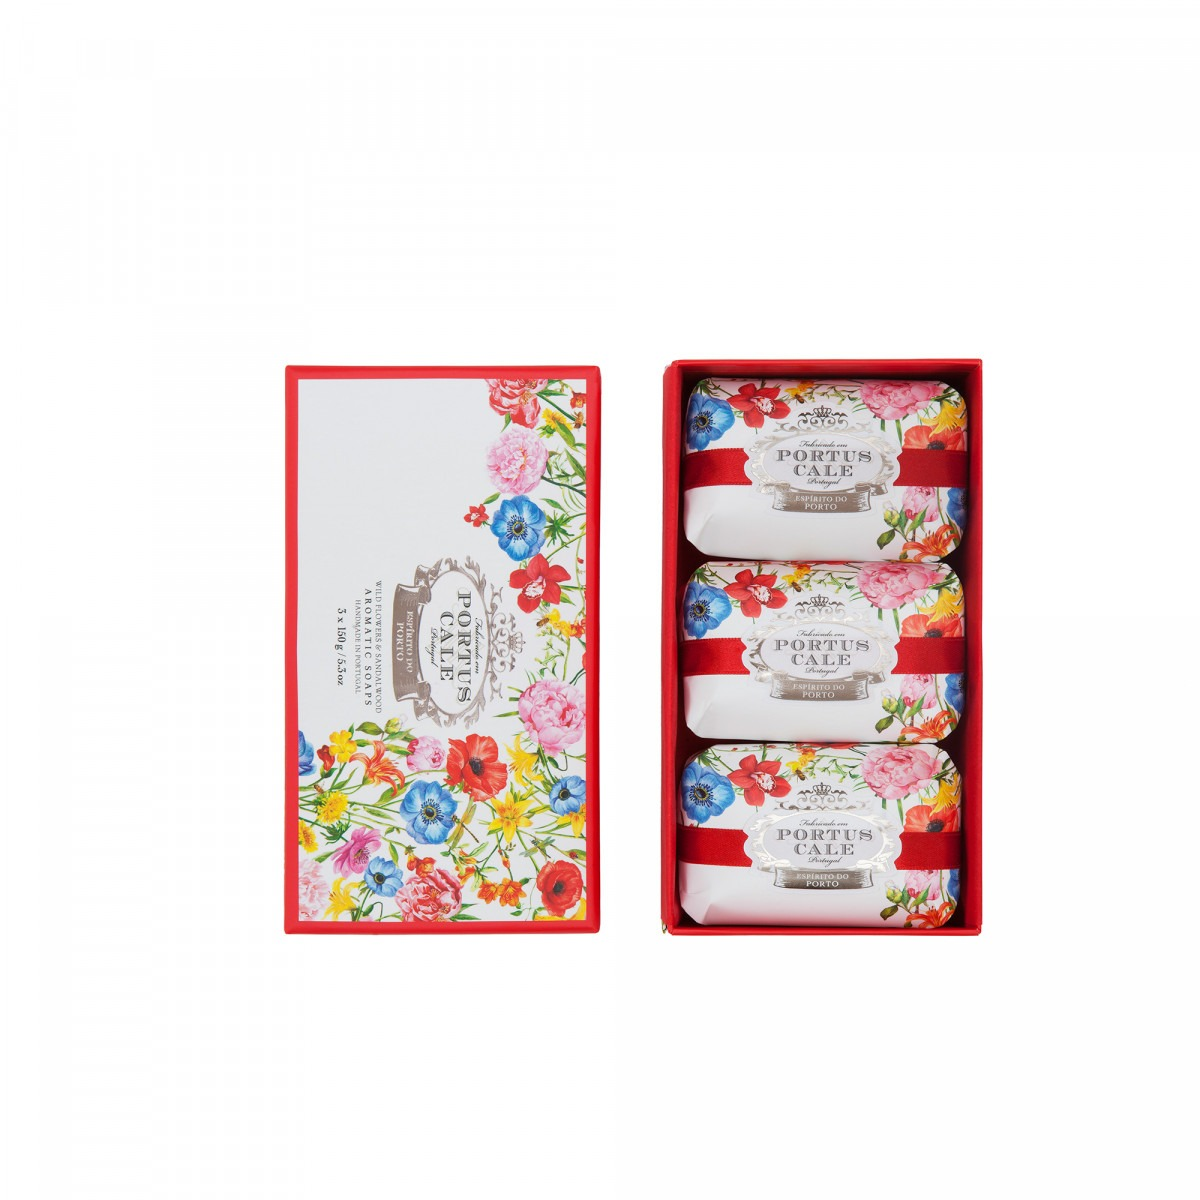 Portus Cale Blooming Garden Boxed Soaps 3 x 150g